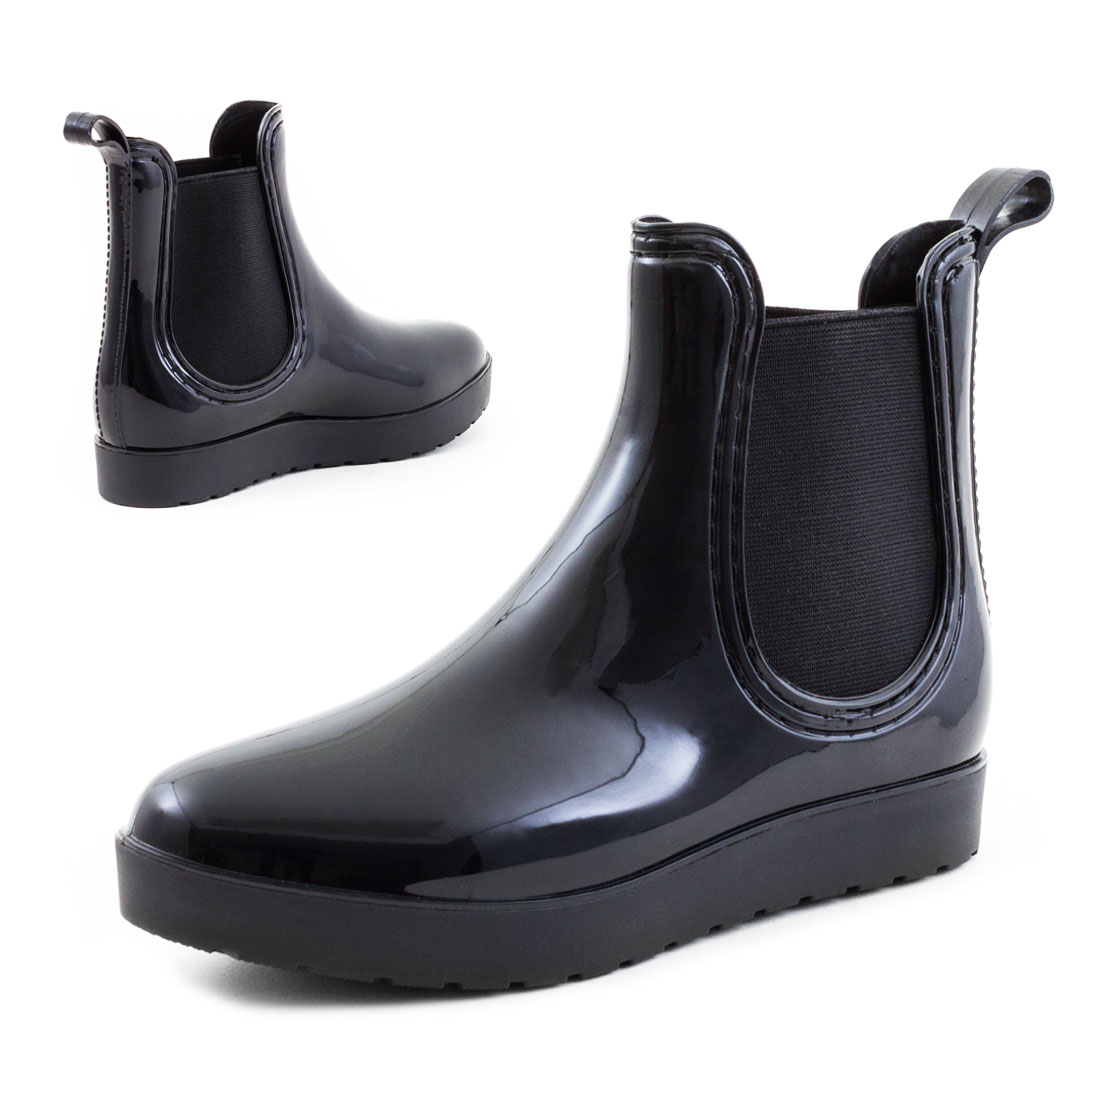 neu damen chelsea lack boots plateau gummistiefel herbst gr 36 37 38 39 40 41 ebay. Black Bedroom Furniture Sets. Home Design Ideas